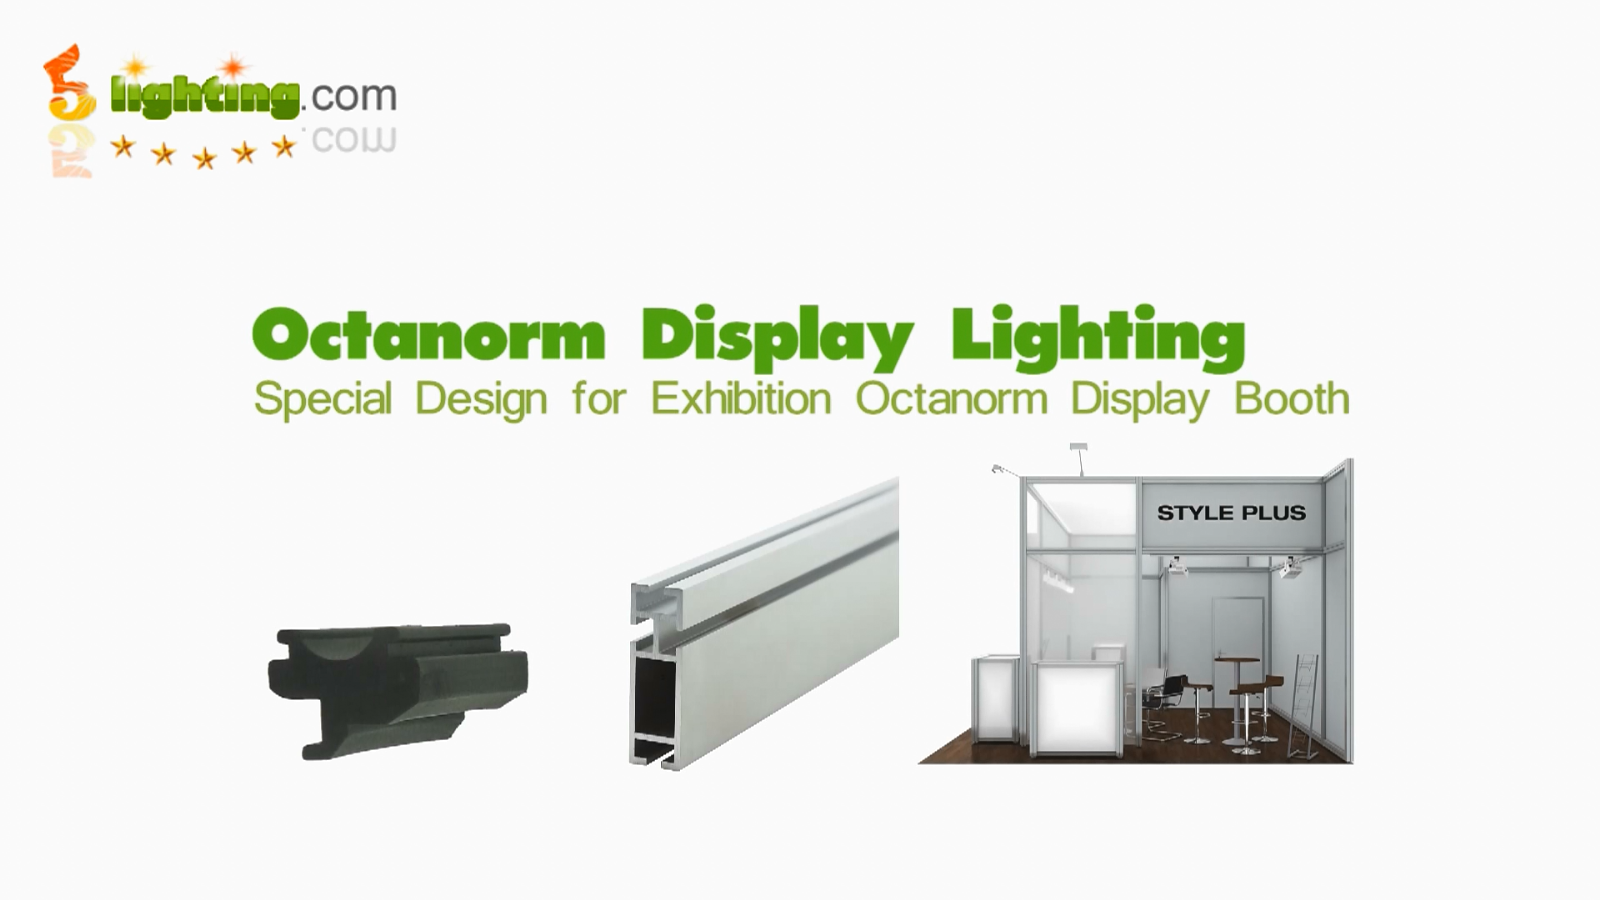 led display lighting for octanorm system